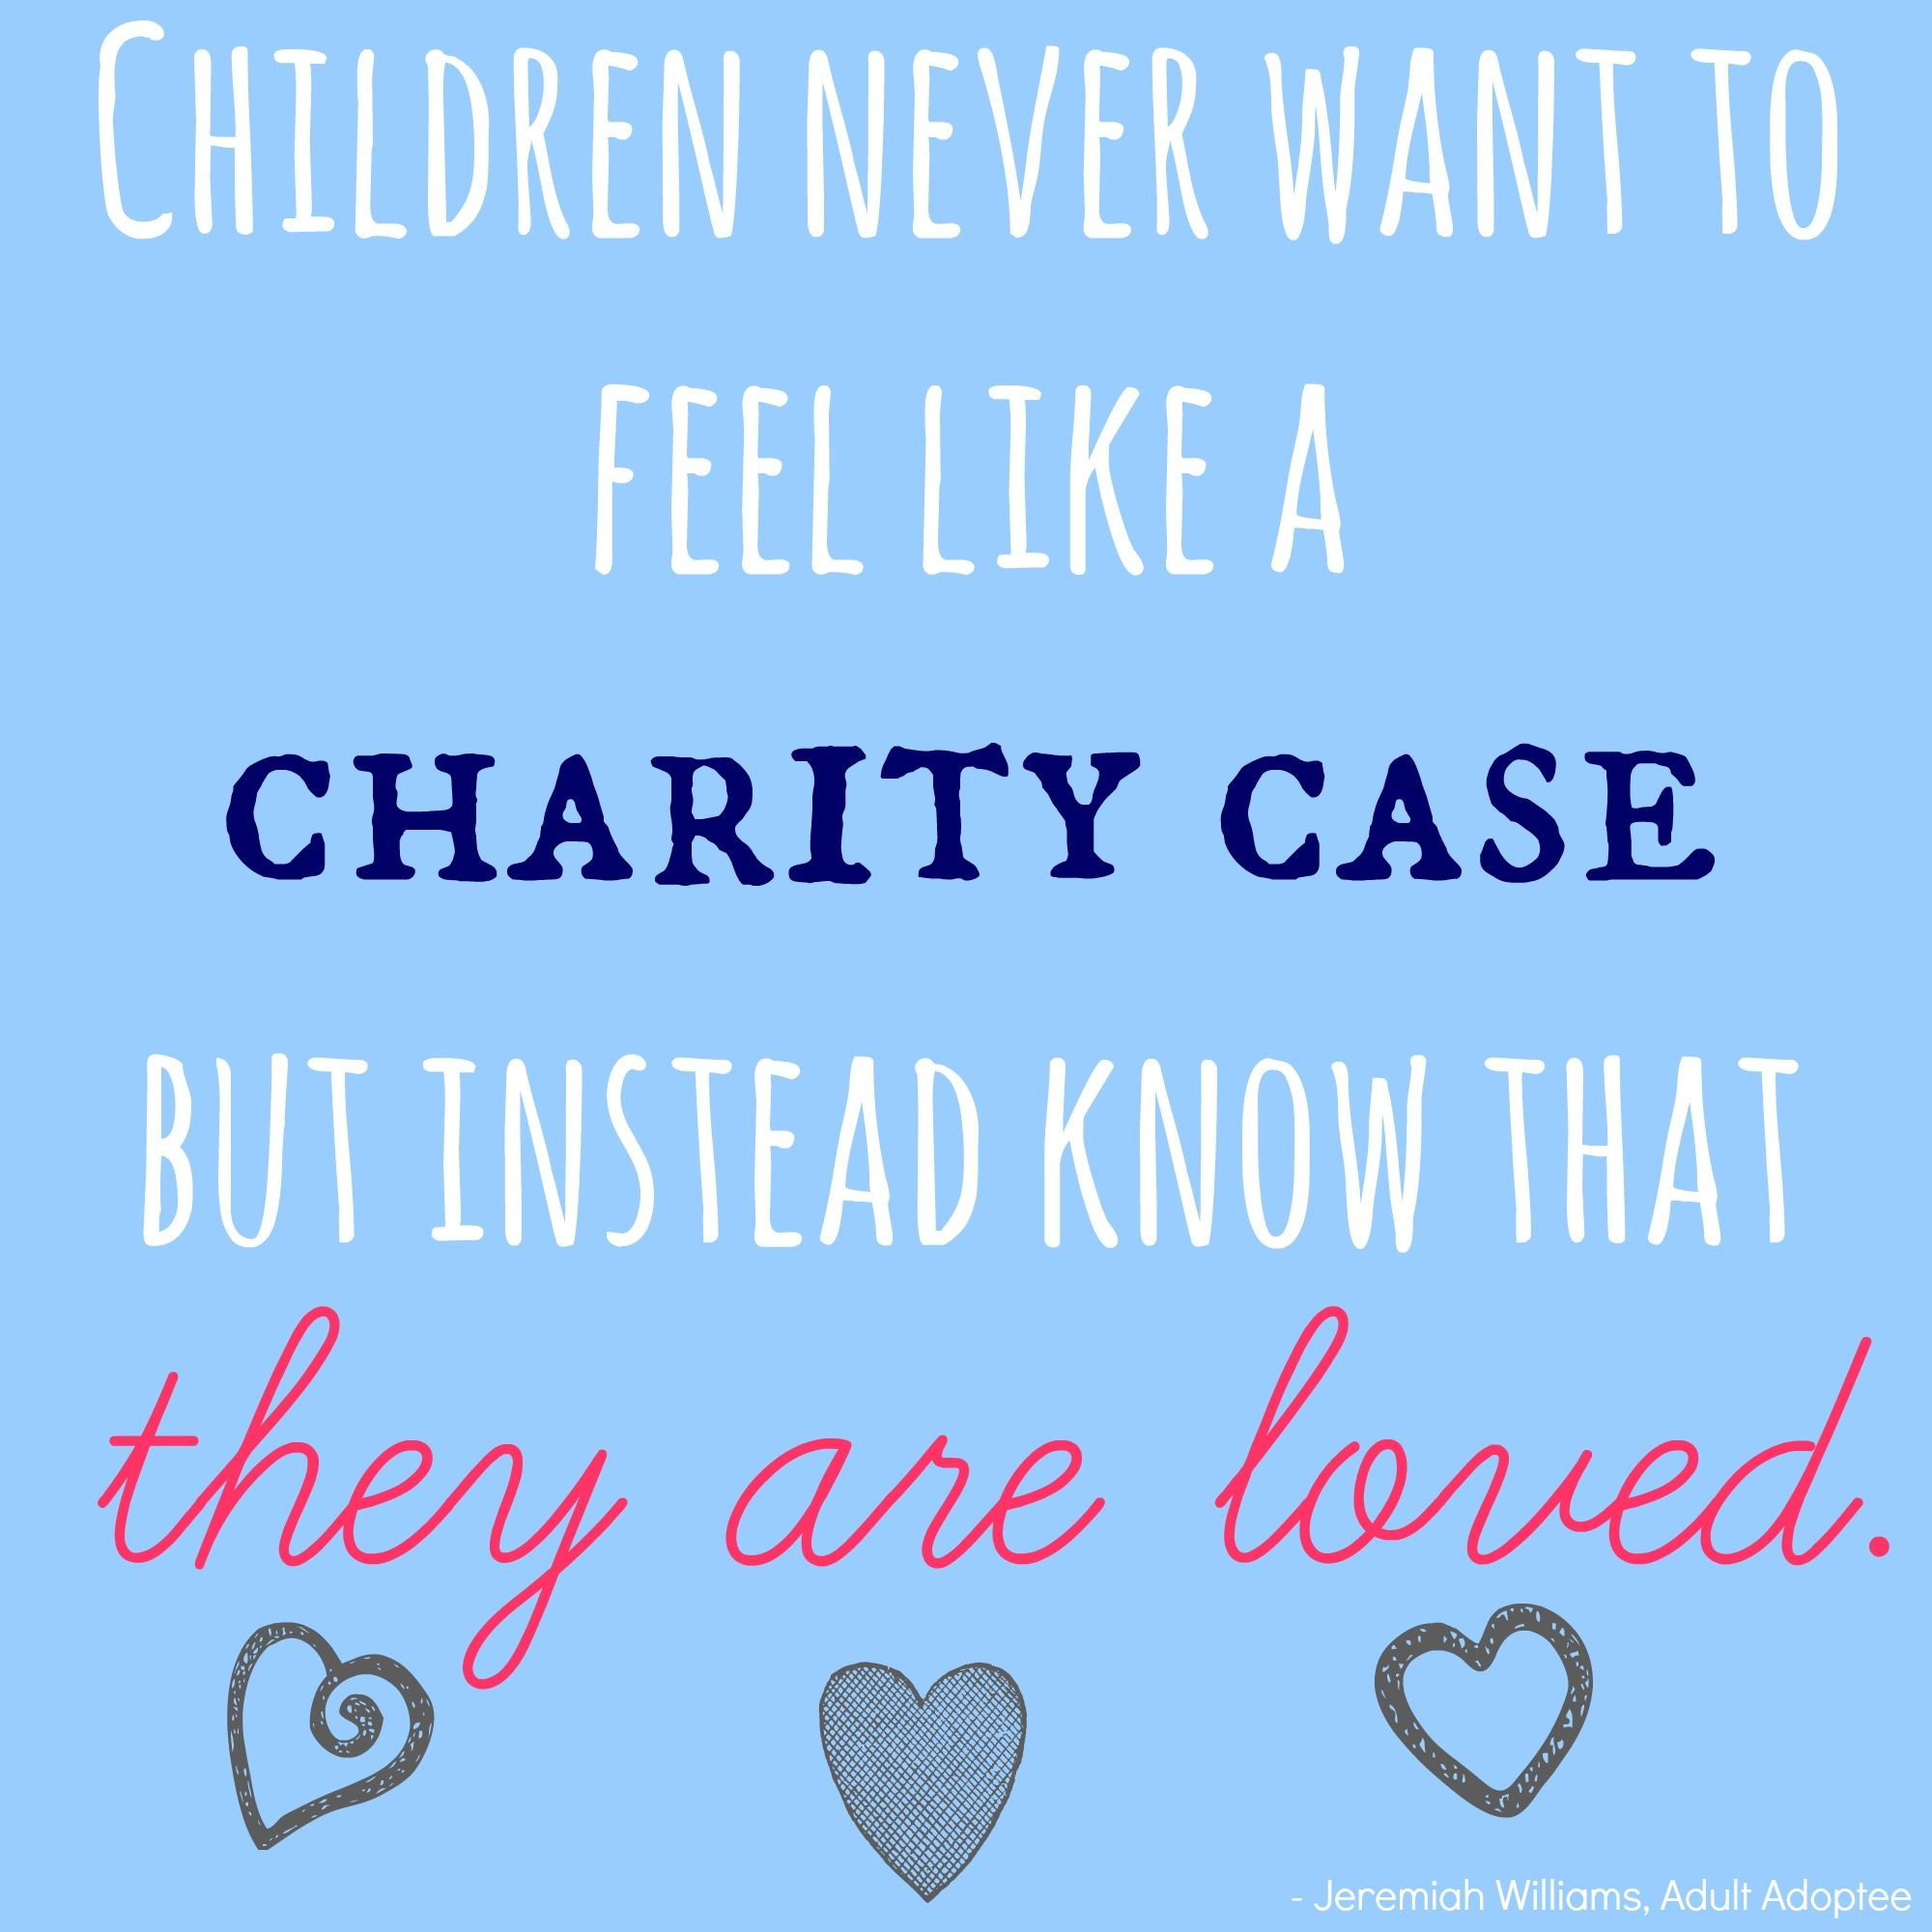 [Adopted] Children never want to feel like a charity case, but instead know that they are loved! - Words from Jeremiah Williams, an adult adoptee.   MLJ Adoptions